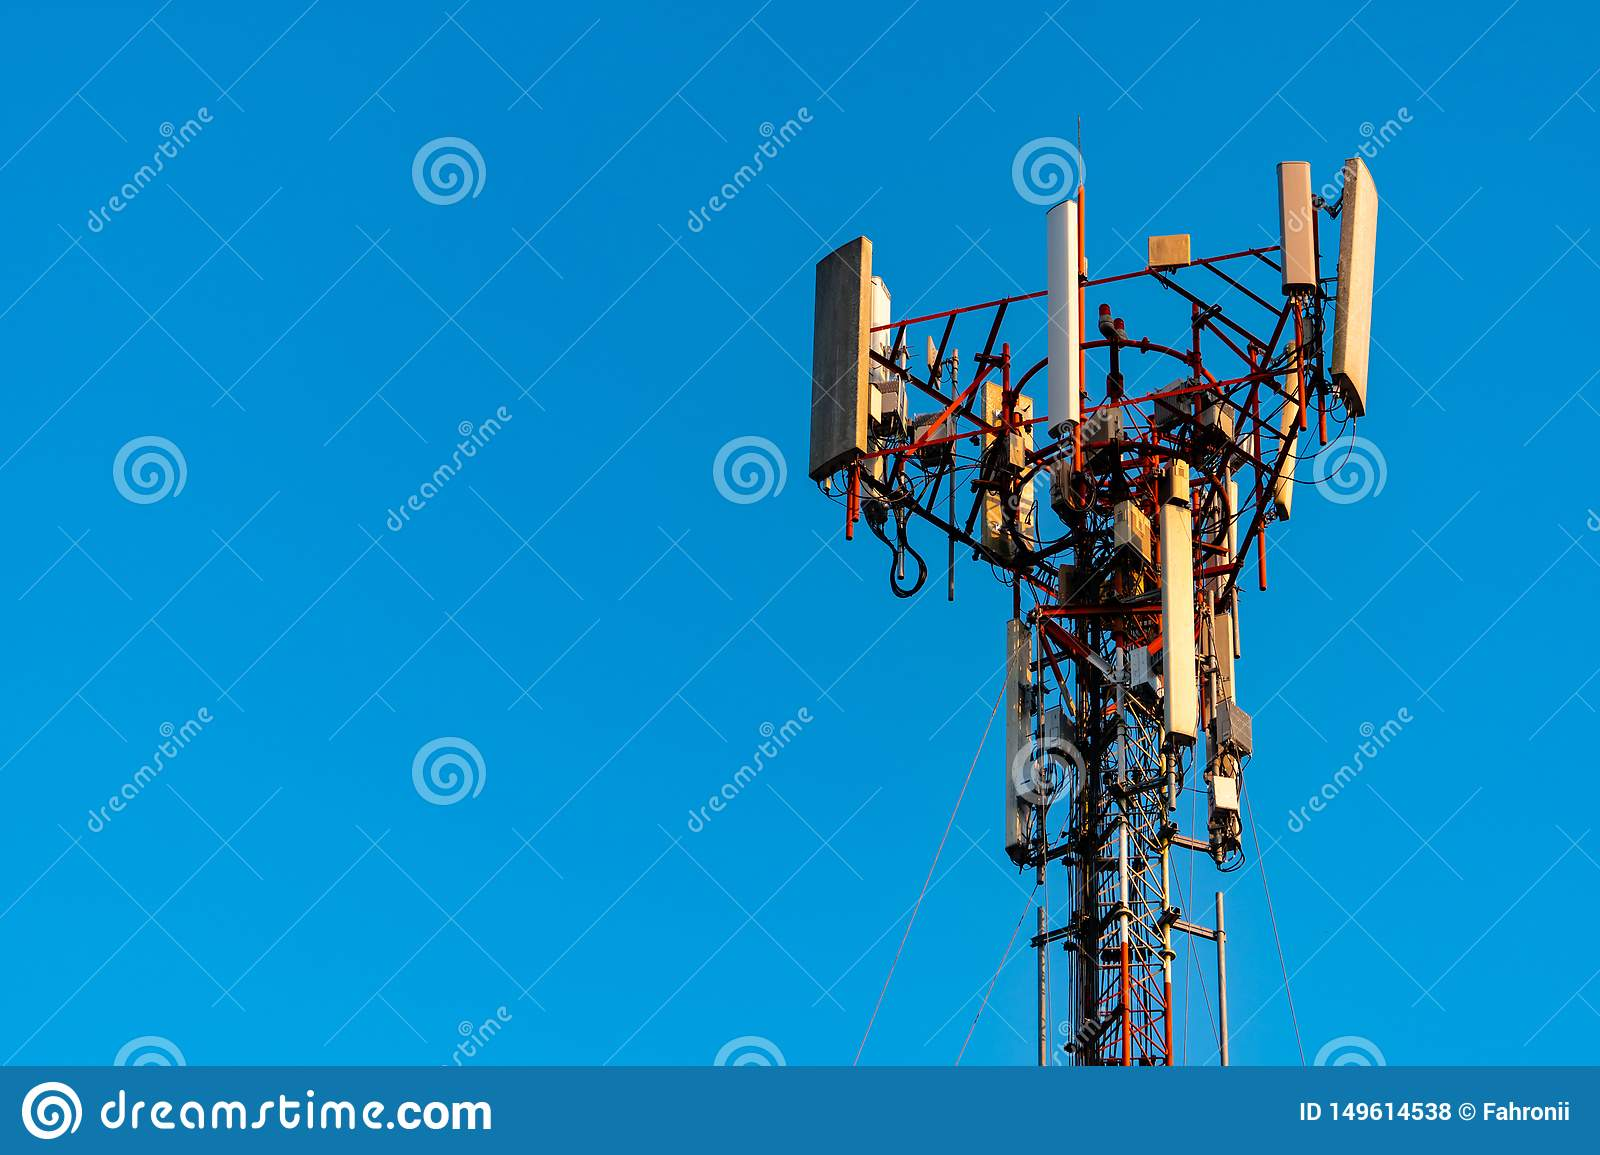 Telecommunication tower with clear blue sky background. Antenna on blue sky background. Radio and satellite pole. Communication